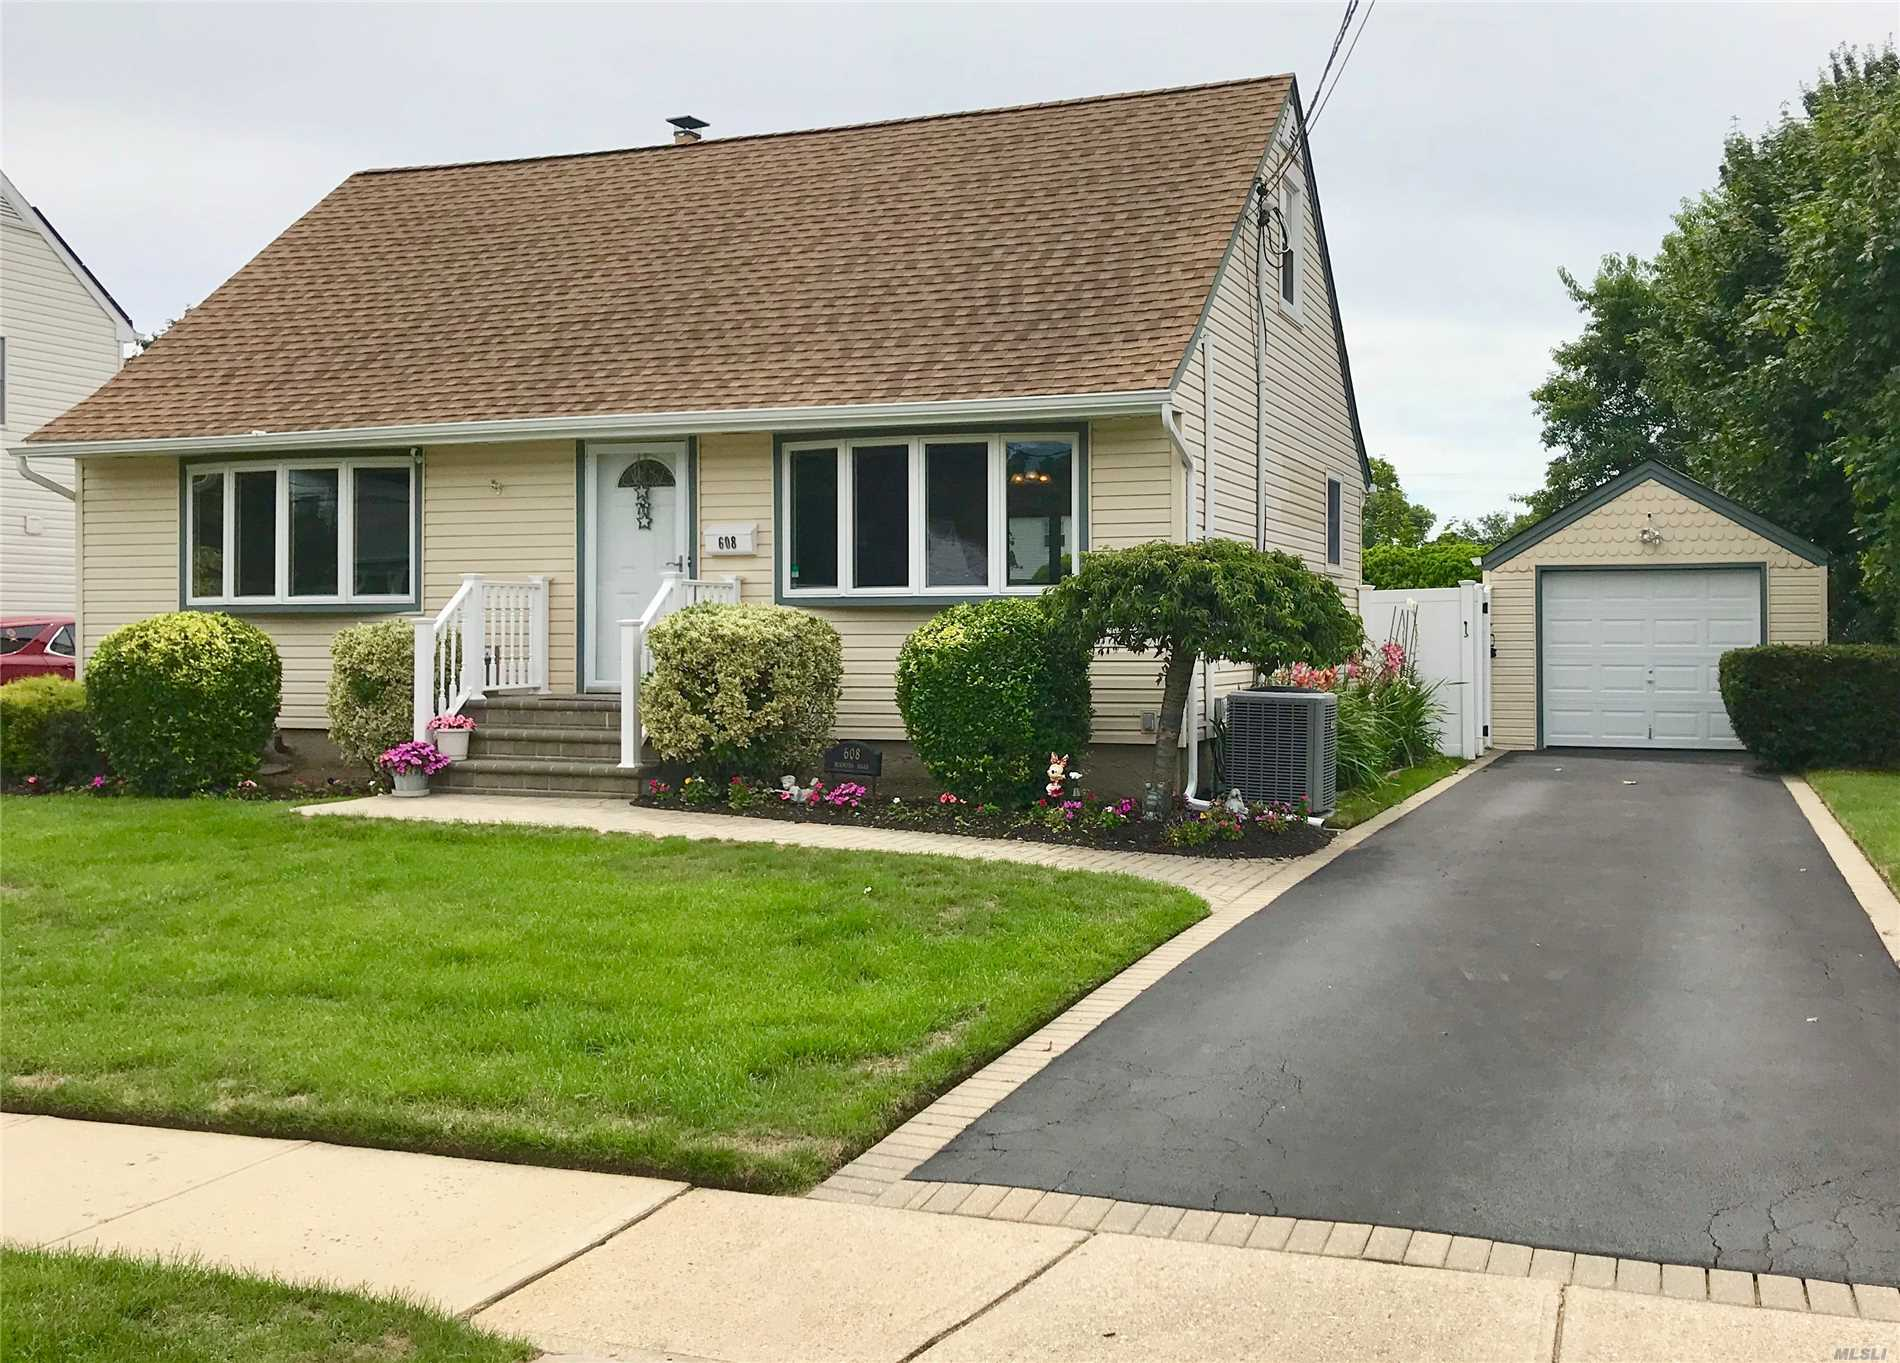 Beautiful New Englander Cape Cod, Open & Spacious Floor Plan, Kitchen W/ Atrium Doors Leading To Rear Deck With Retractable Awning, Updated Bath, Hardwood Floors, Immaculate, Newly Finished Basement. Central A/C, 200 Amp Electric., Prof. Landscaped W/ Flowers Galore, Sprinklers, A True Beauty!